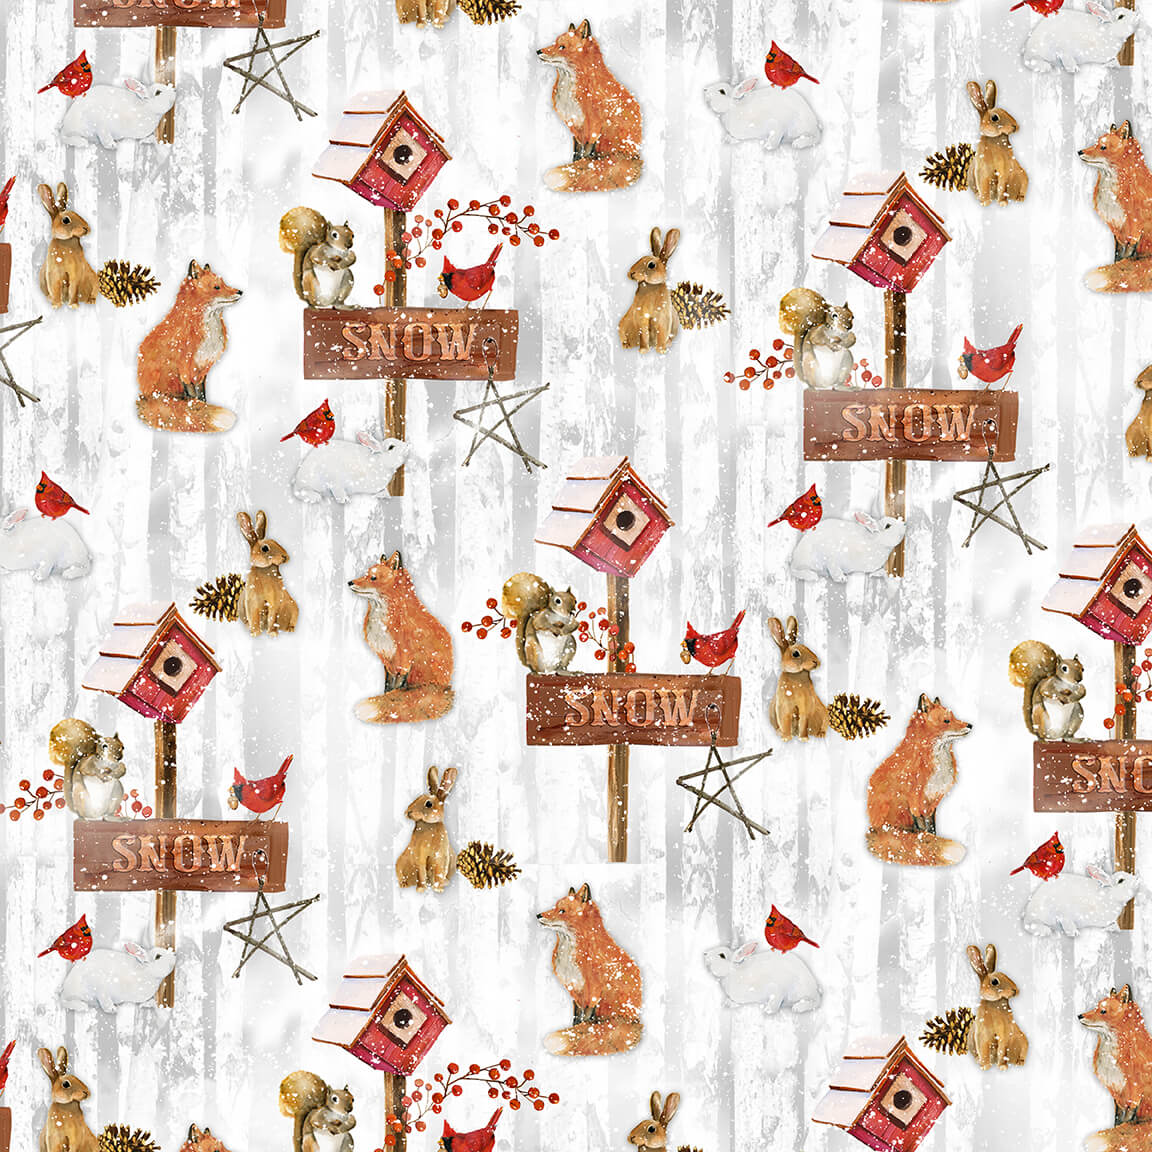 Snow Days Q-1636-90 Tossed Woodland Animals